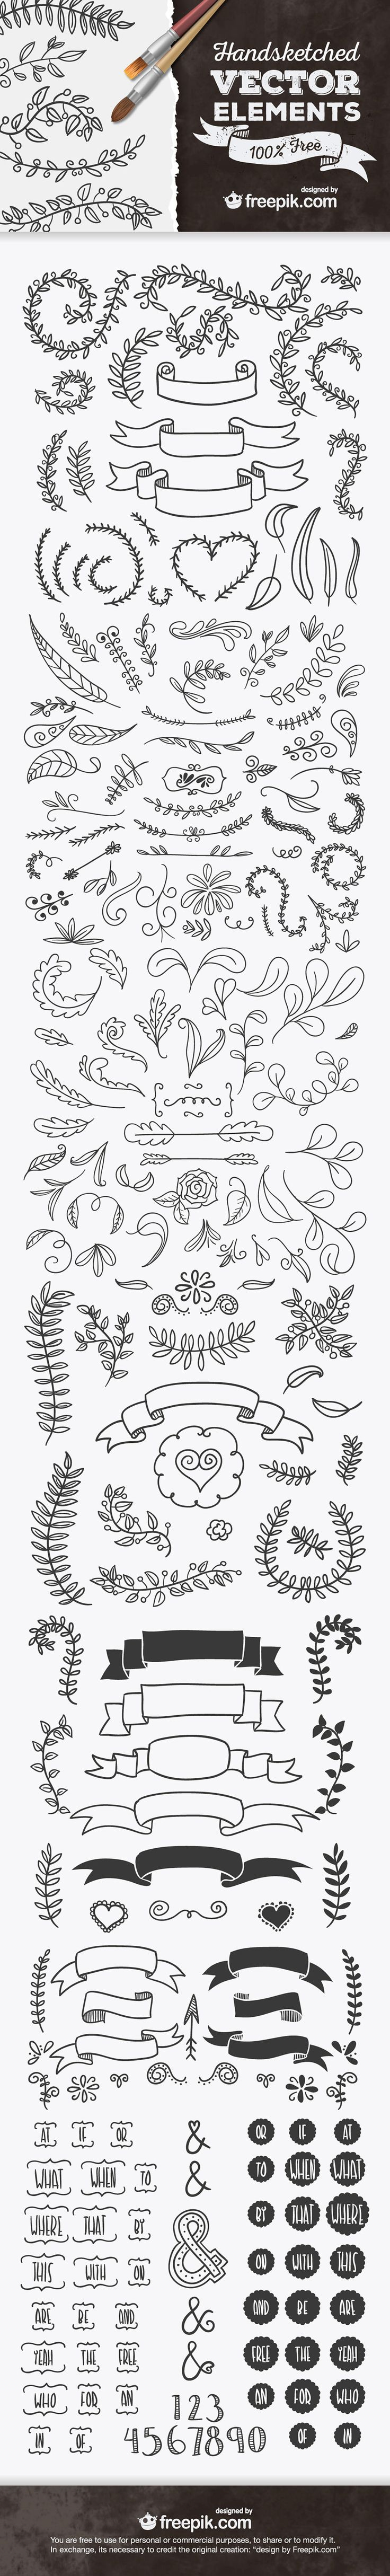 Best ever handsketched free vector elements